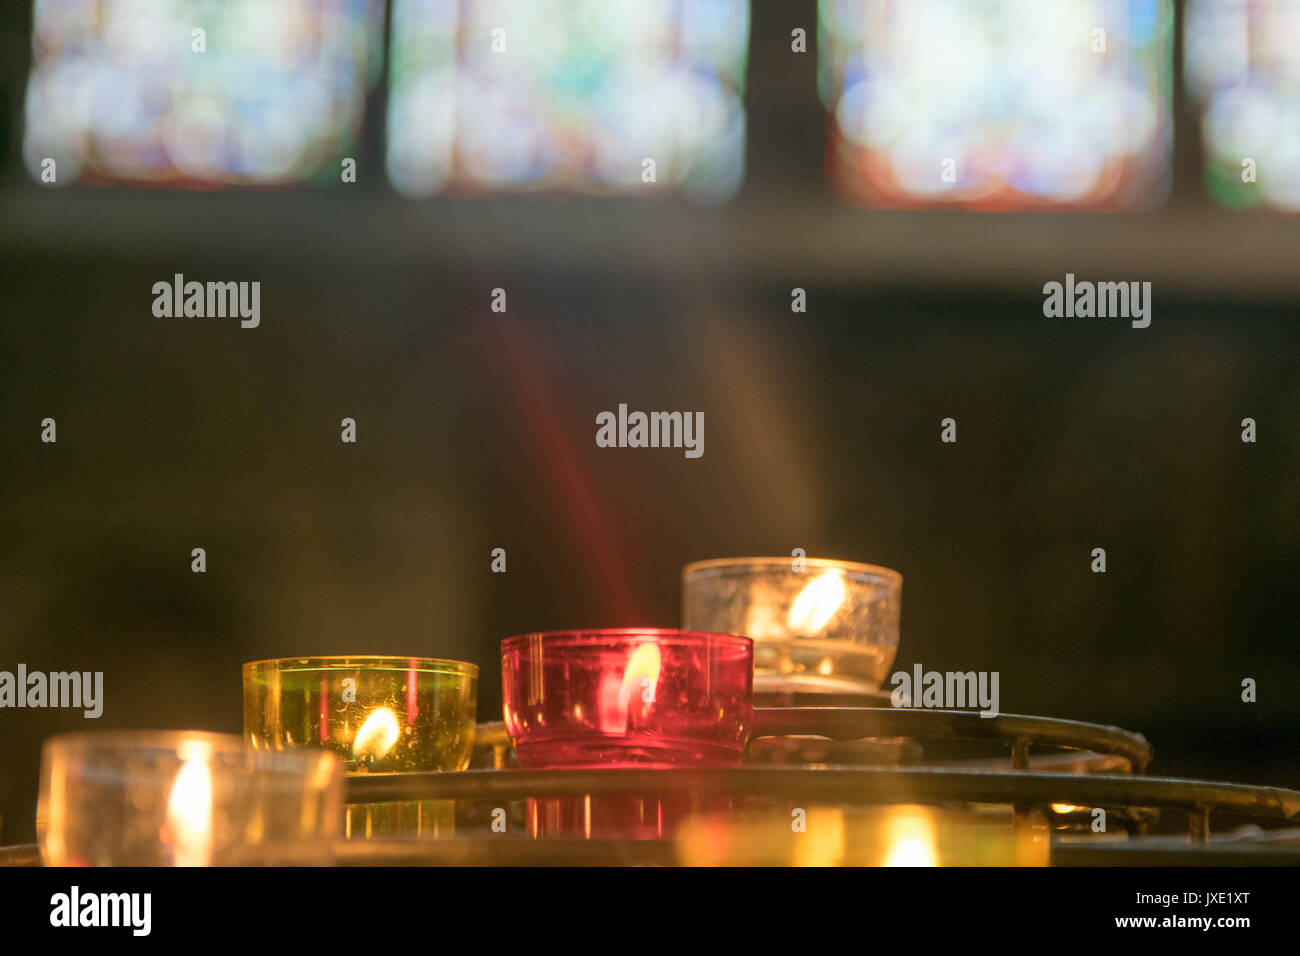 Candles were lighted at Notre Dame church in Paris of France - Stock Image